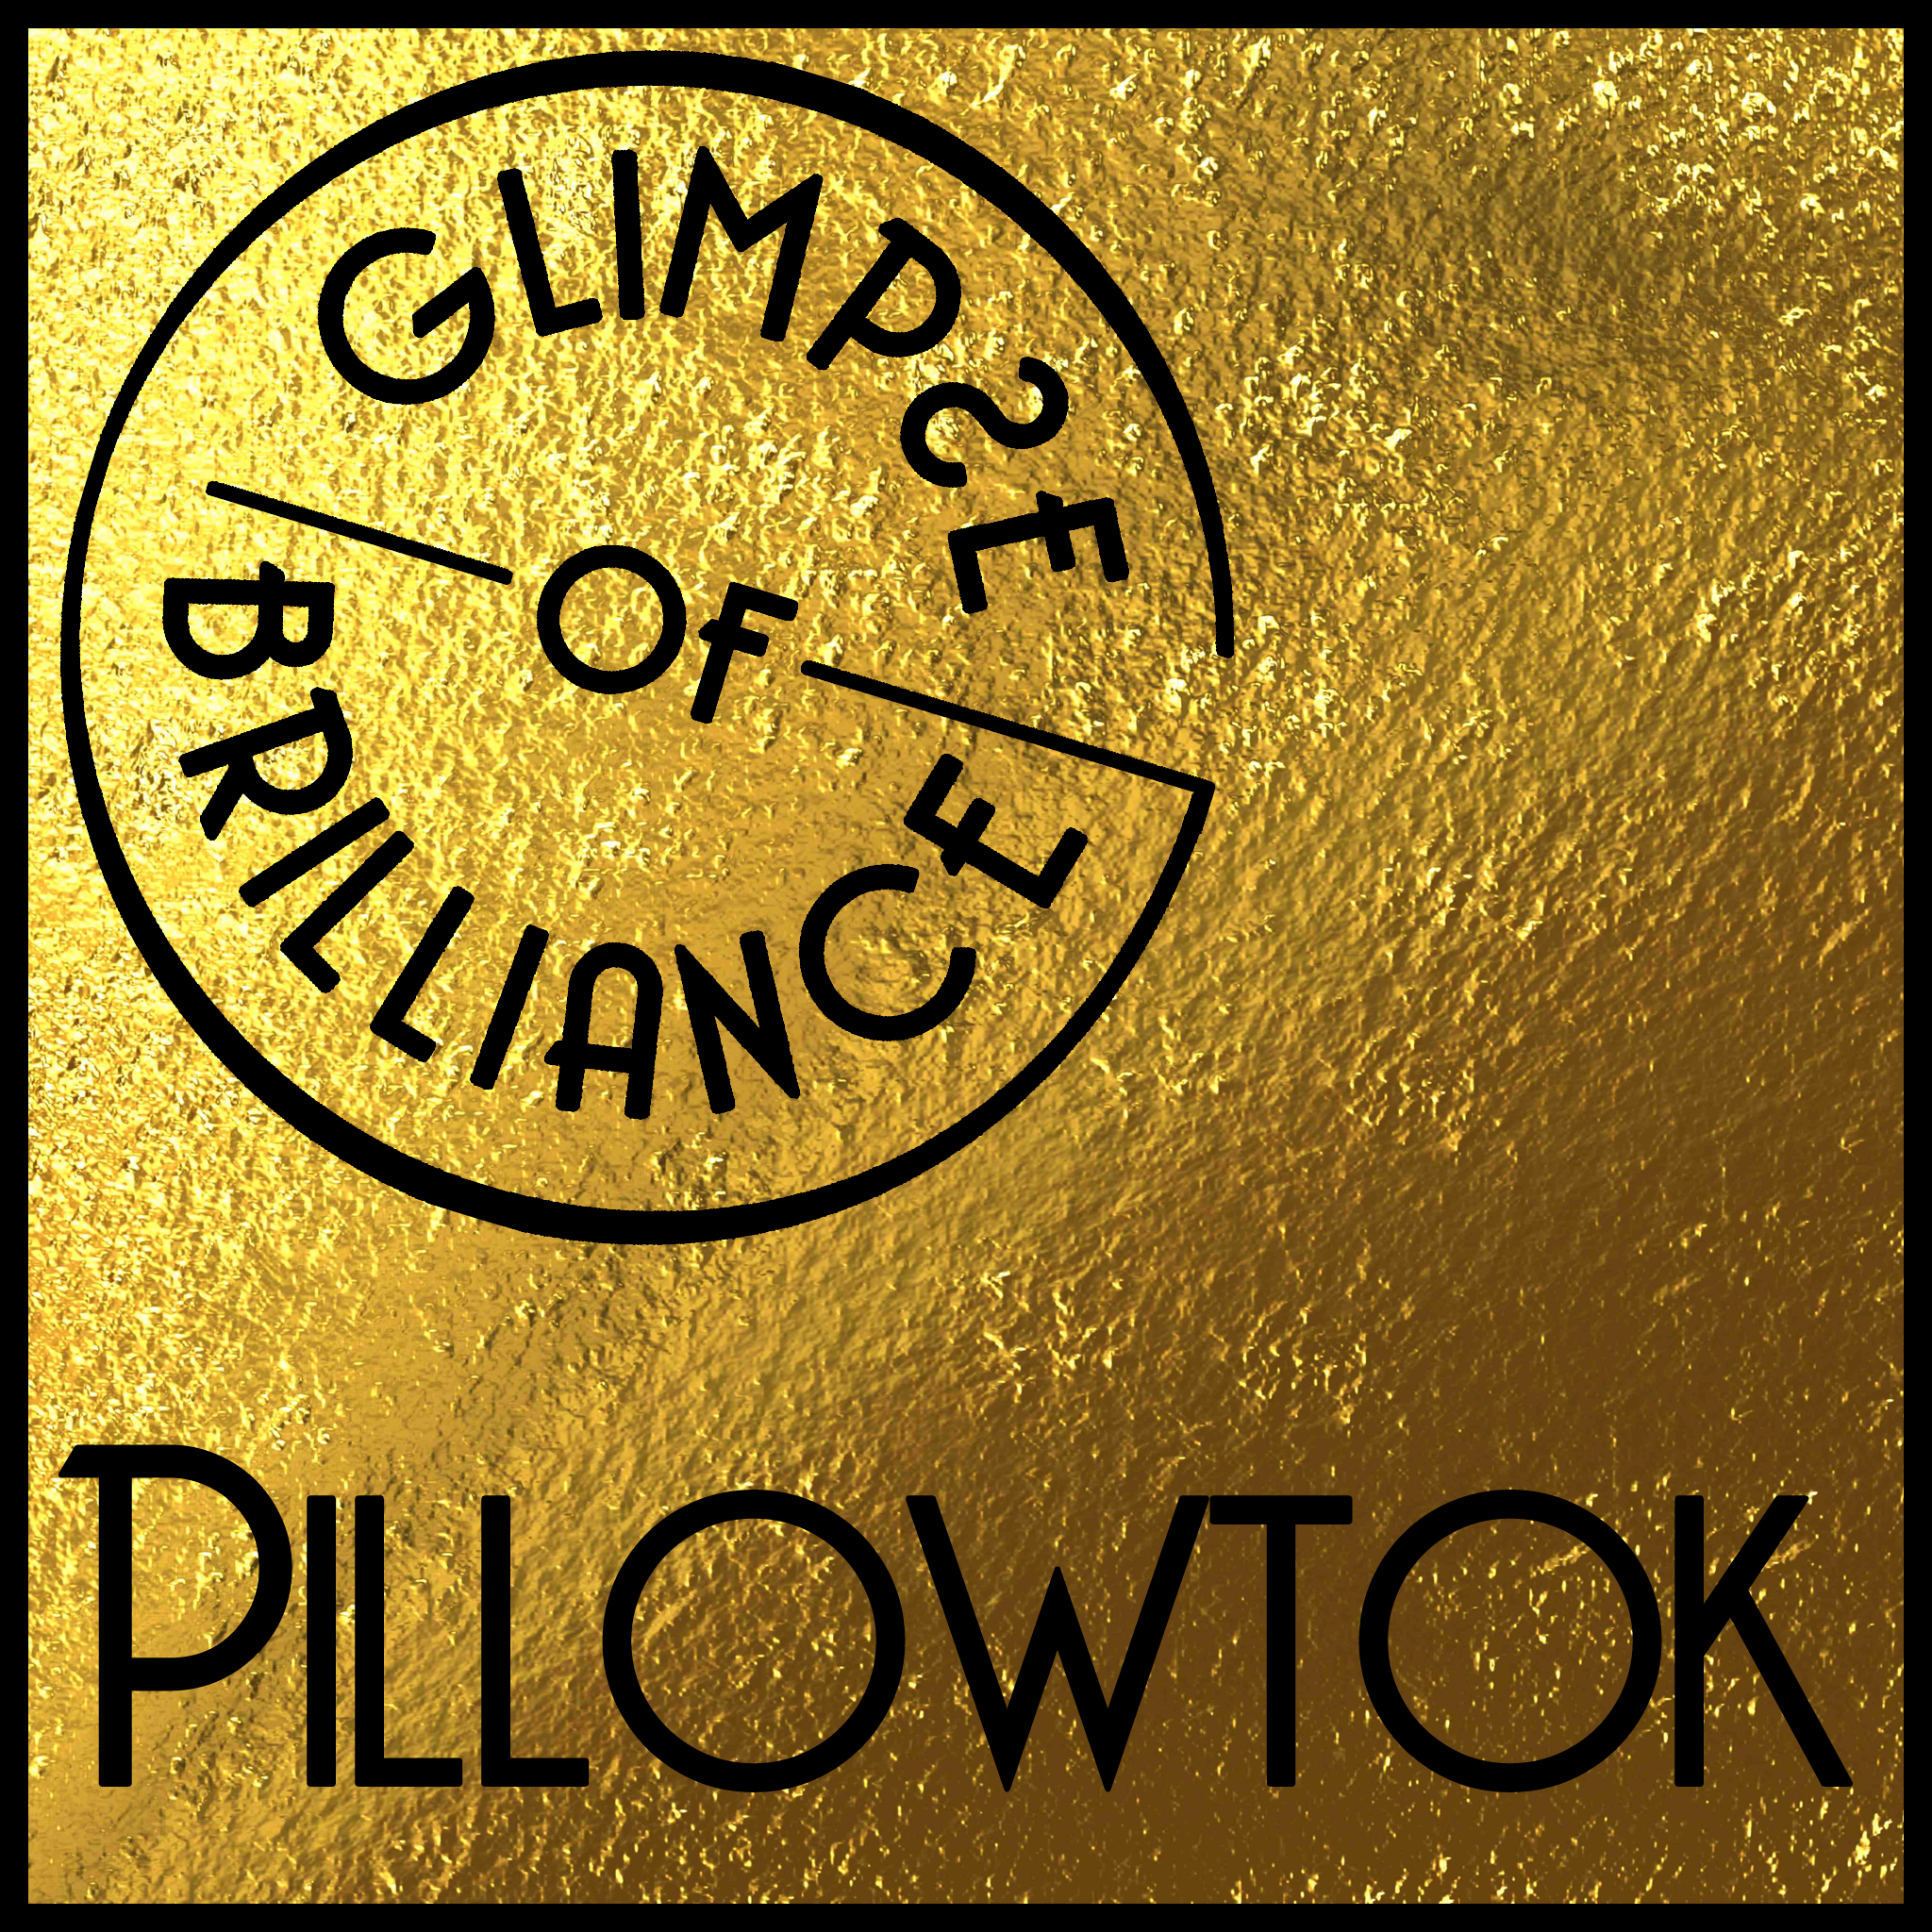 Pillowtok - Glimpse of Brilliance